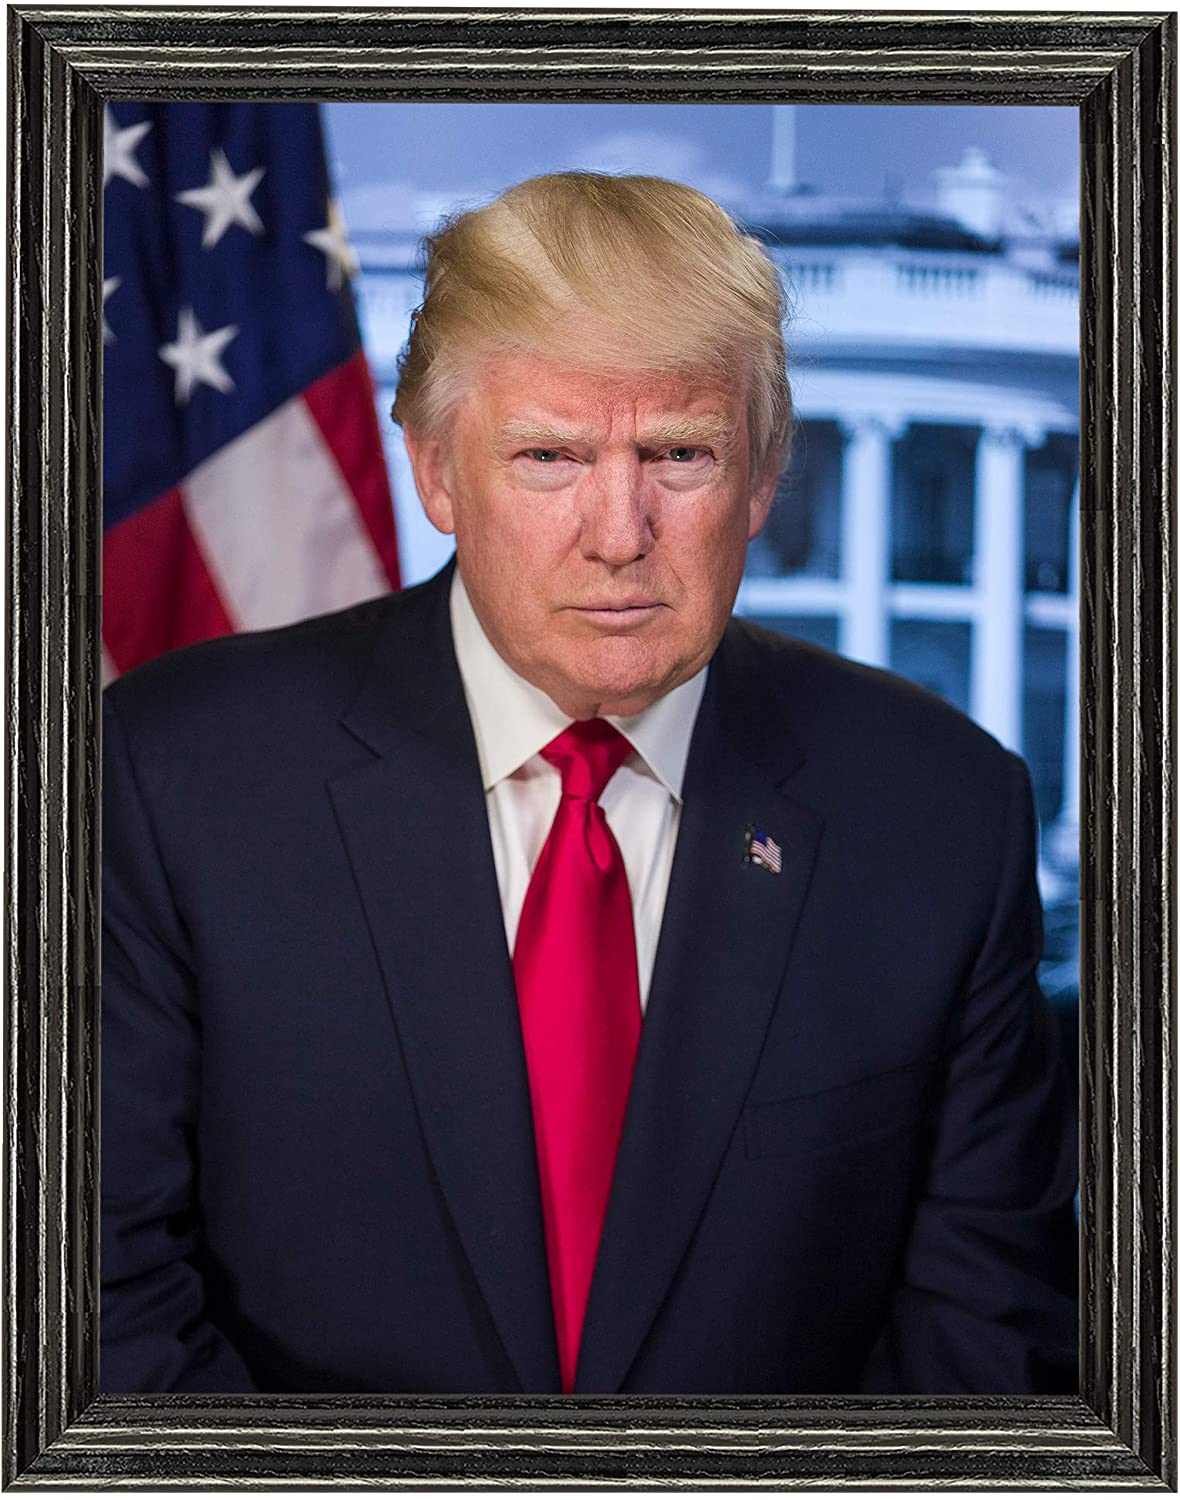 Donald Trump Photograph in a Black Wood Frame - Historical Artwork from 2016 - US President Portrait - (11